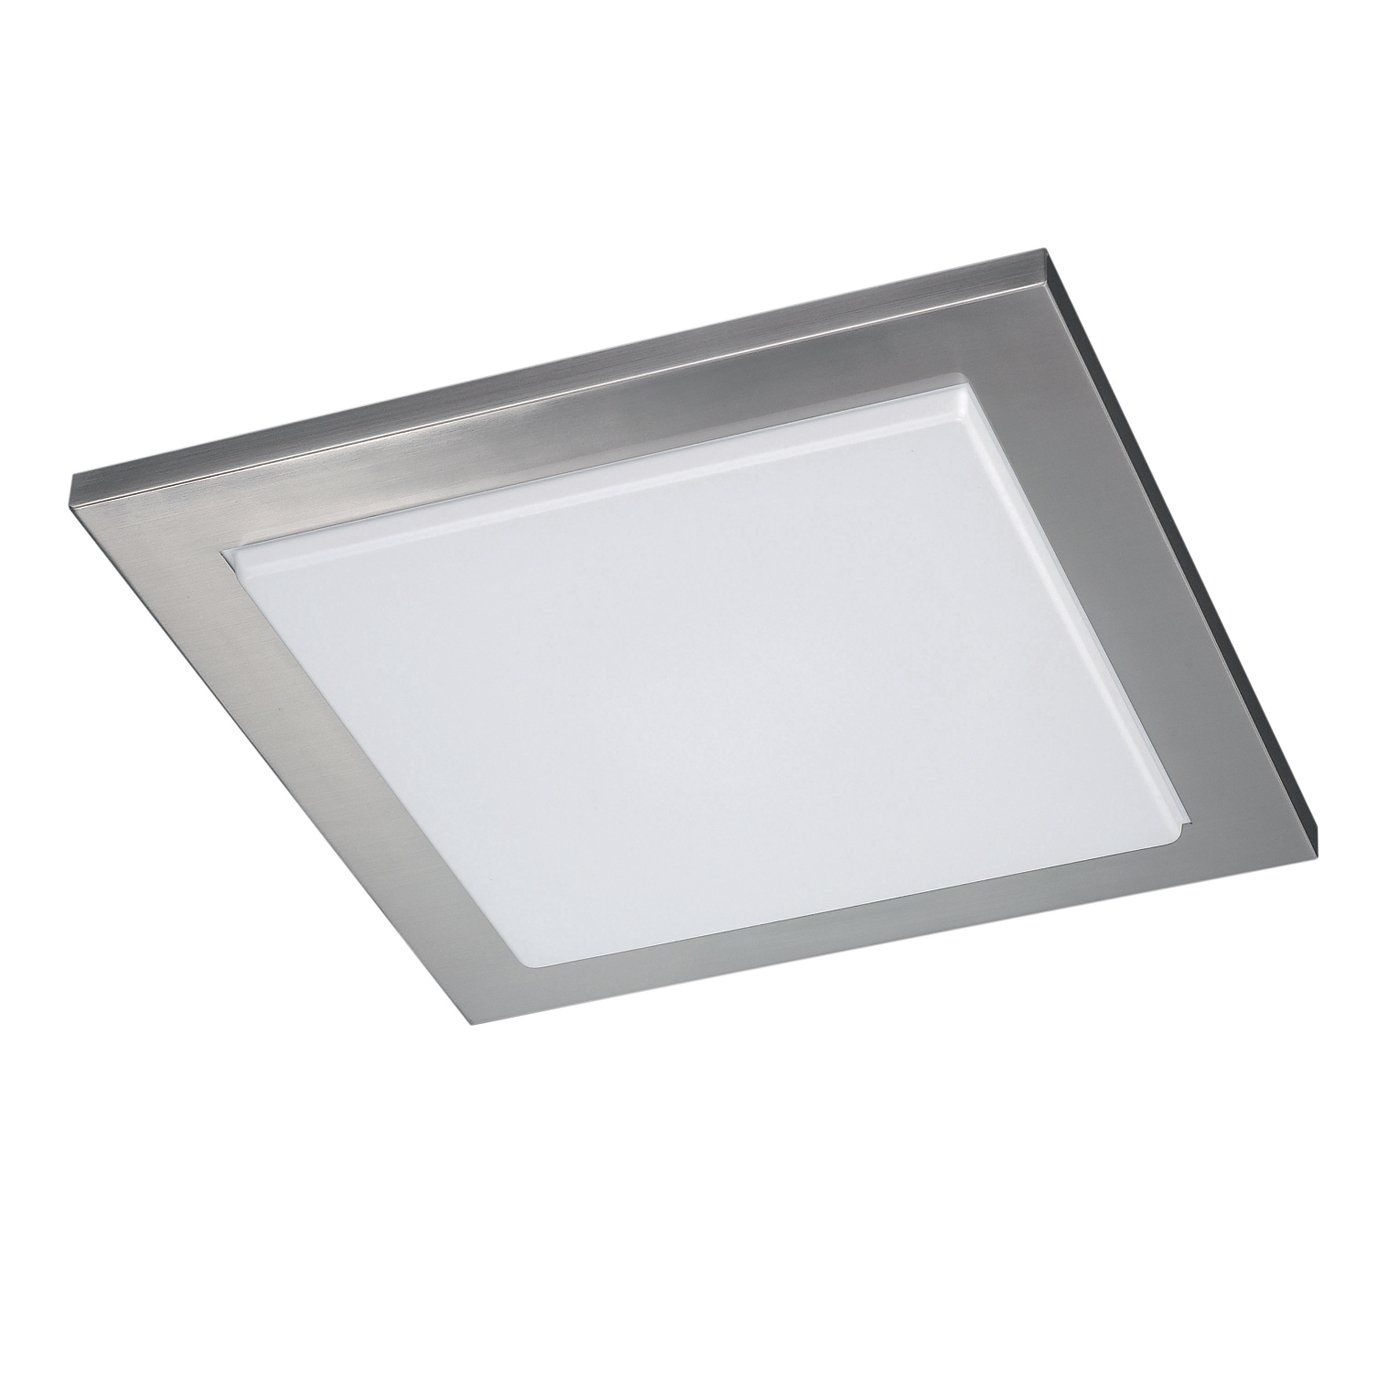 Energy Saving Bathroom Ceiling Lights philips 30207 roomstylers energy efficient square flush mount